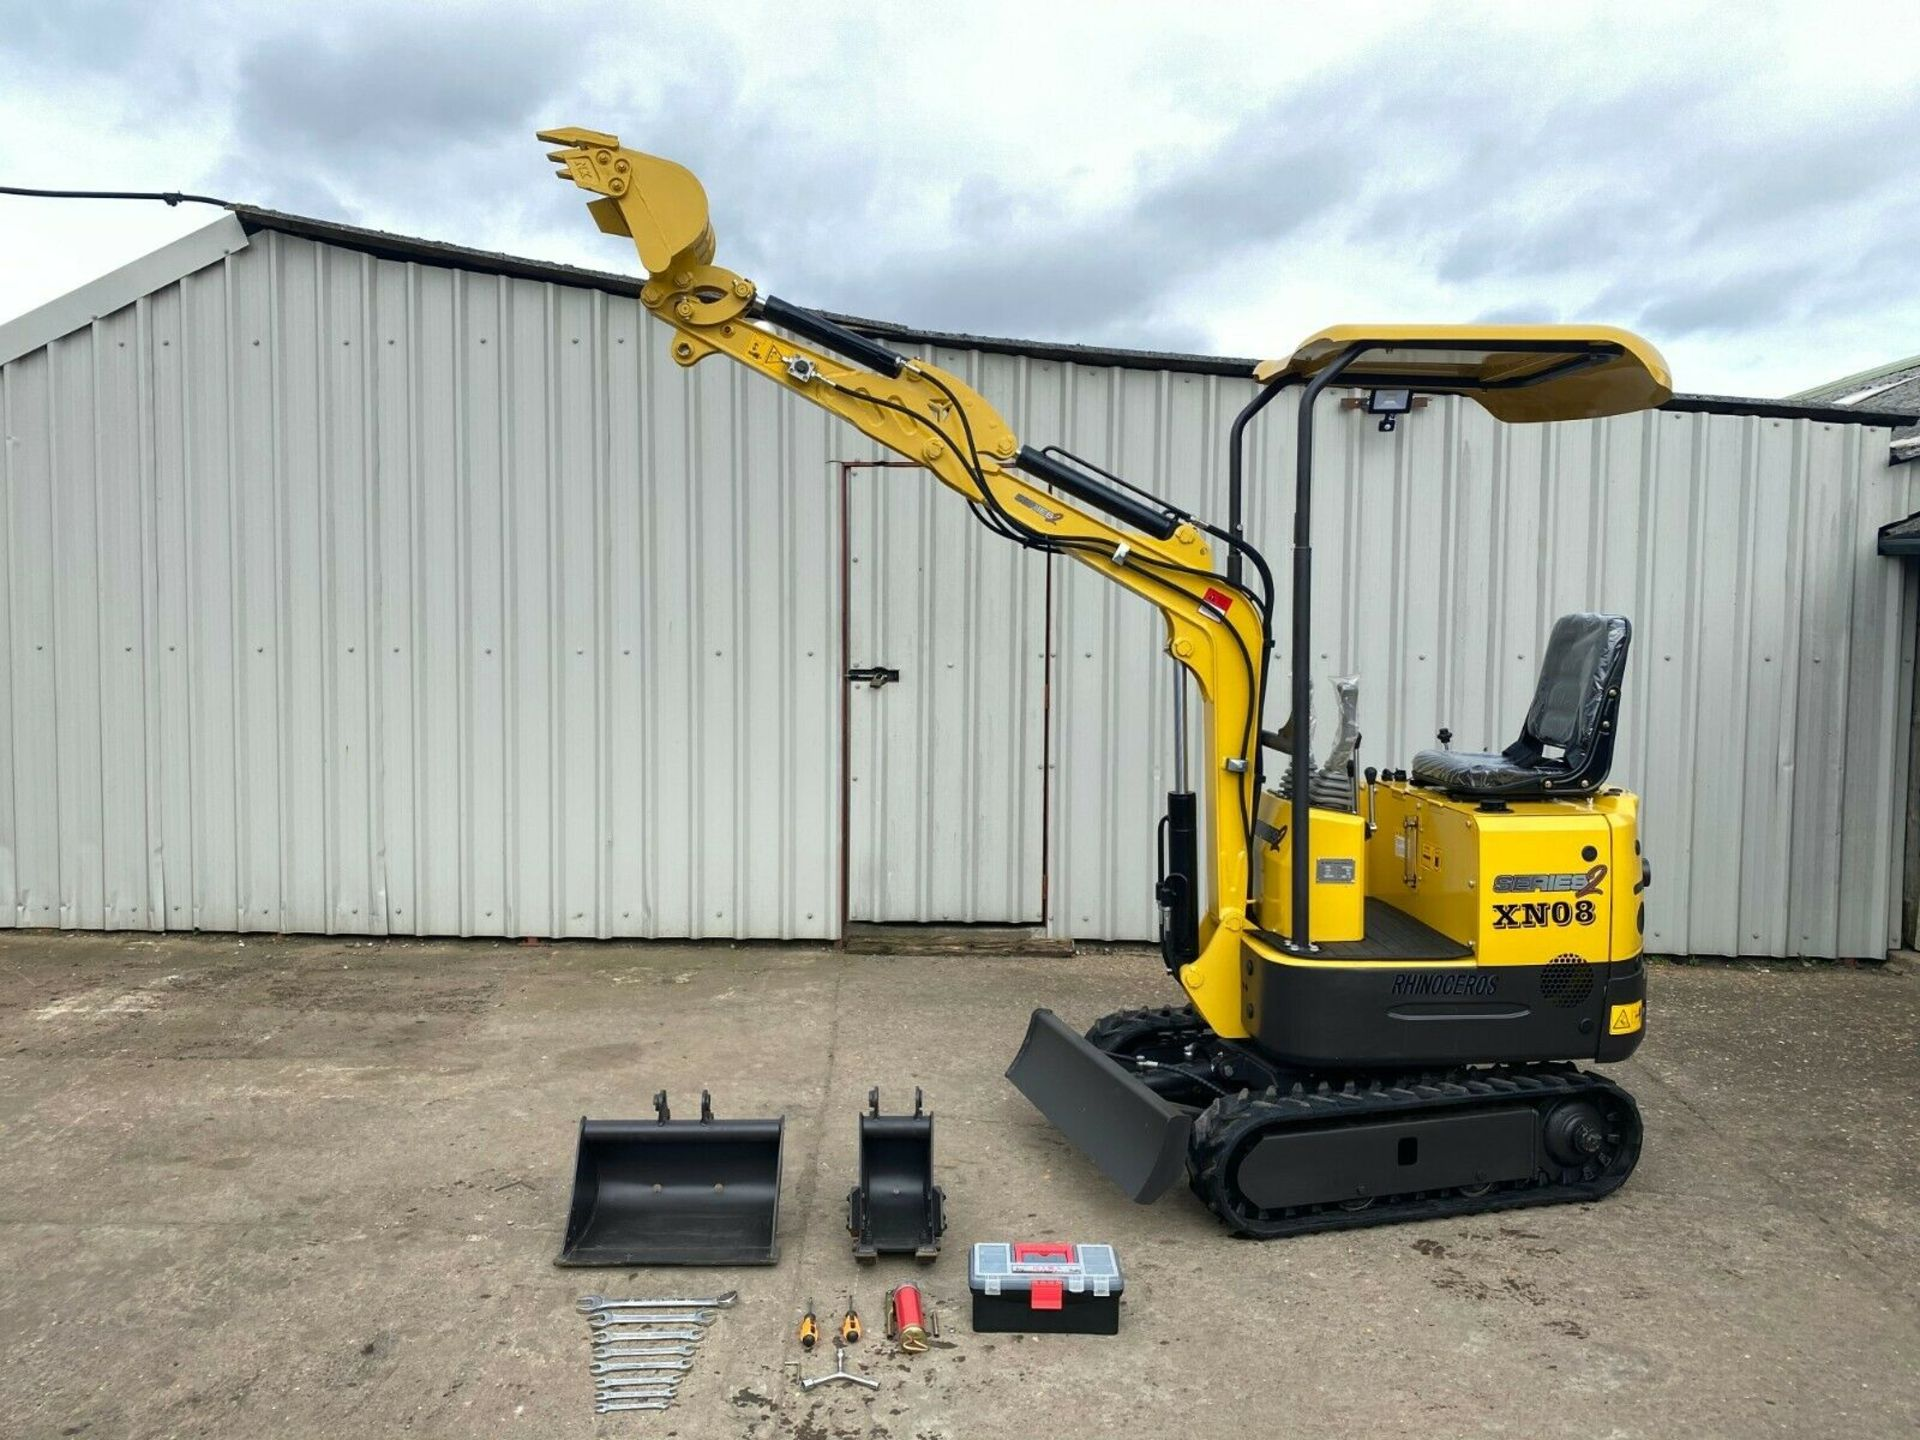 Lot 168 - MINI EXCAVATOR RHINOCEROS XN08 BRAND NEW, YEAR 2020, LATEST MODEL SERIES 2, 3 BUCKETS, CE MARKED